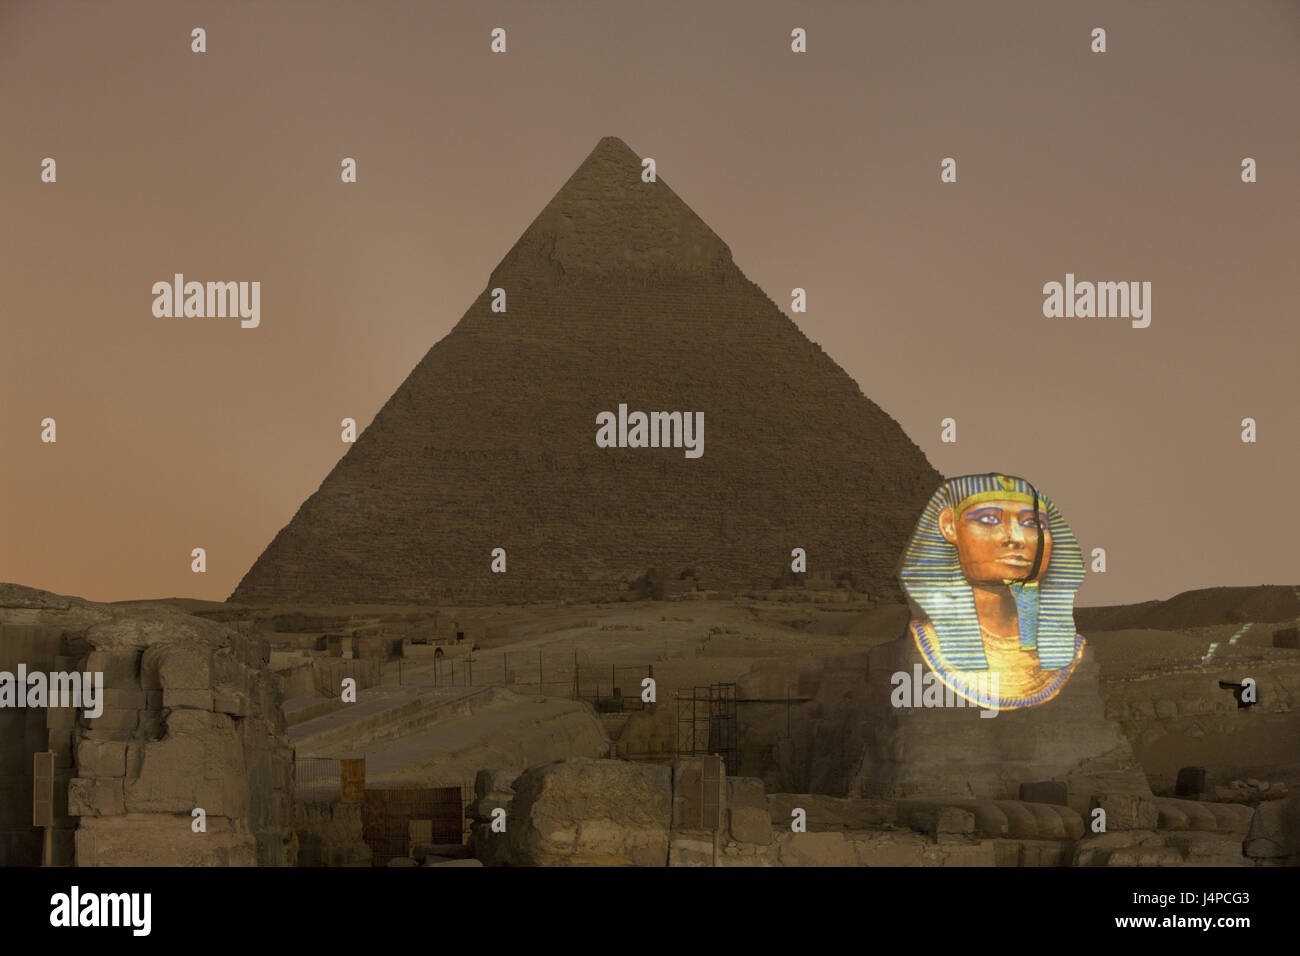 Light show in the pyramids of Gizeh, Egypt, Cairo, Stock Photo